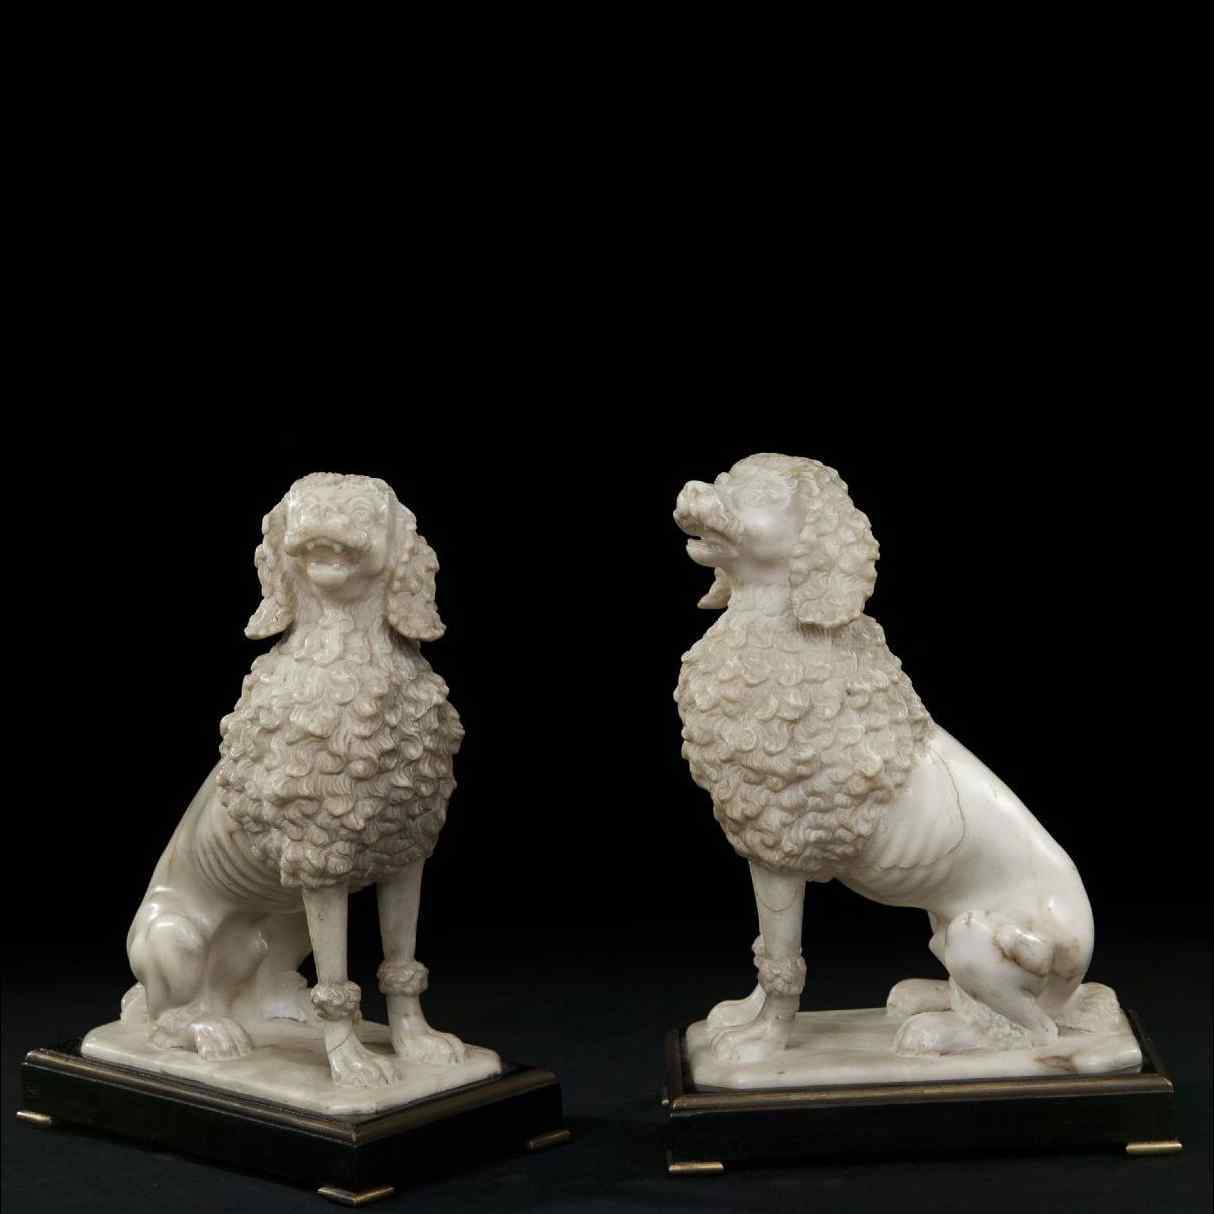 Pair of 18th century marble sculptures